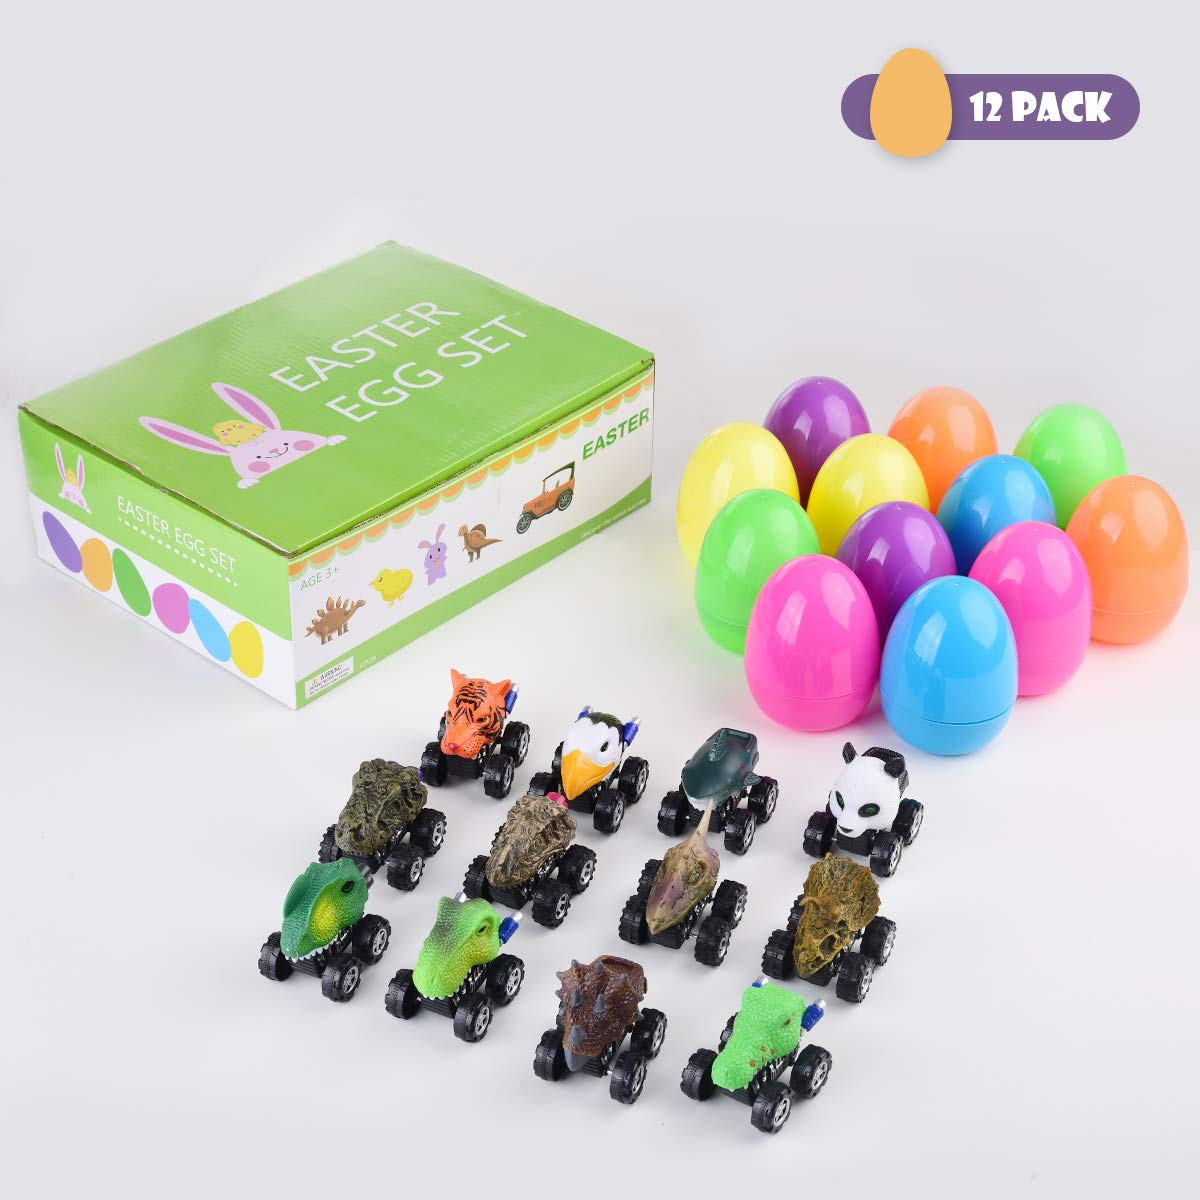 """Mitcien 12 Pack 4/"""" Easter Eggs Toys Filled with Dinosaur Animal Pull Back Cars Plastic Surprise Eggs Giant Large Easter Egg Basket Stuffers Fillers Easter Gifts Toys for Kids Toddlers"""